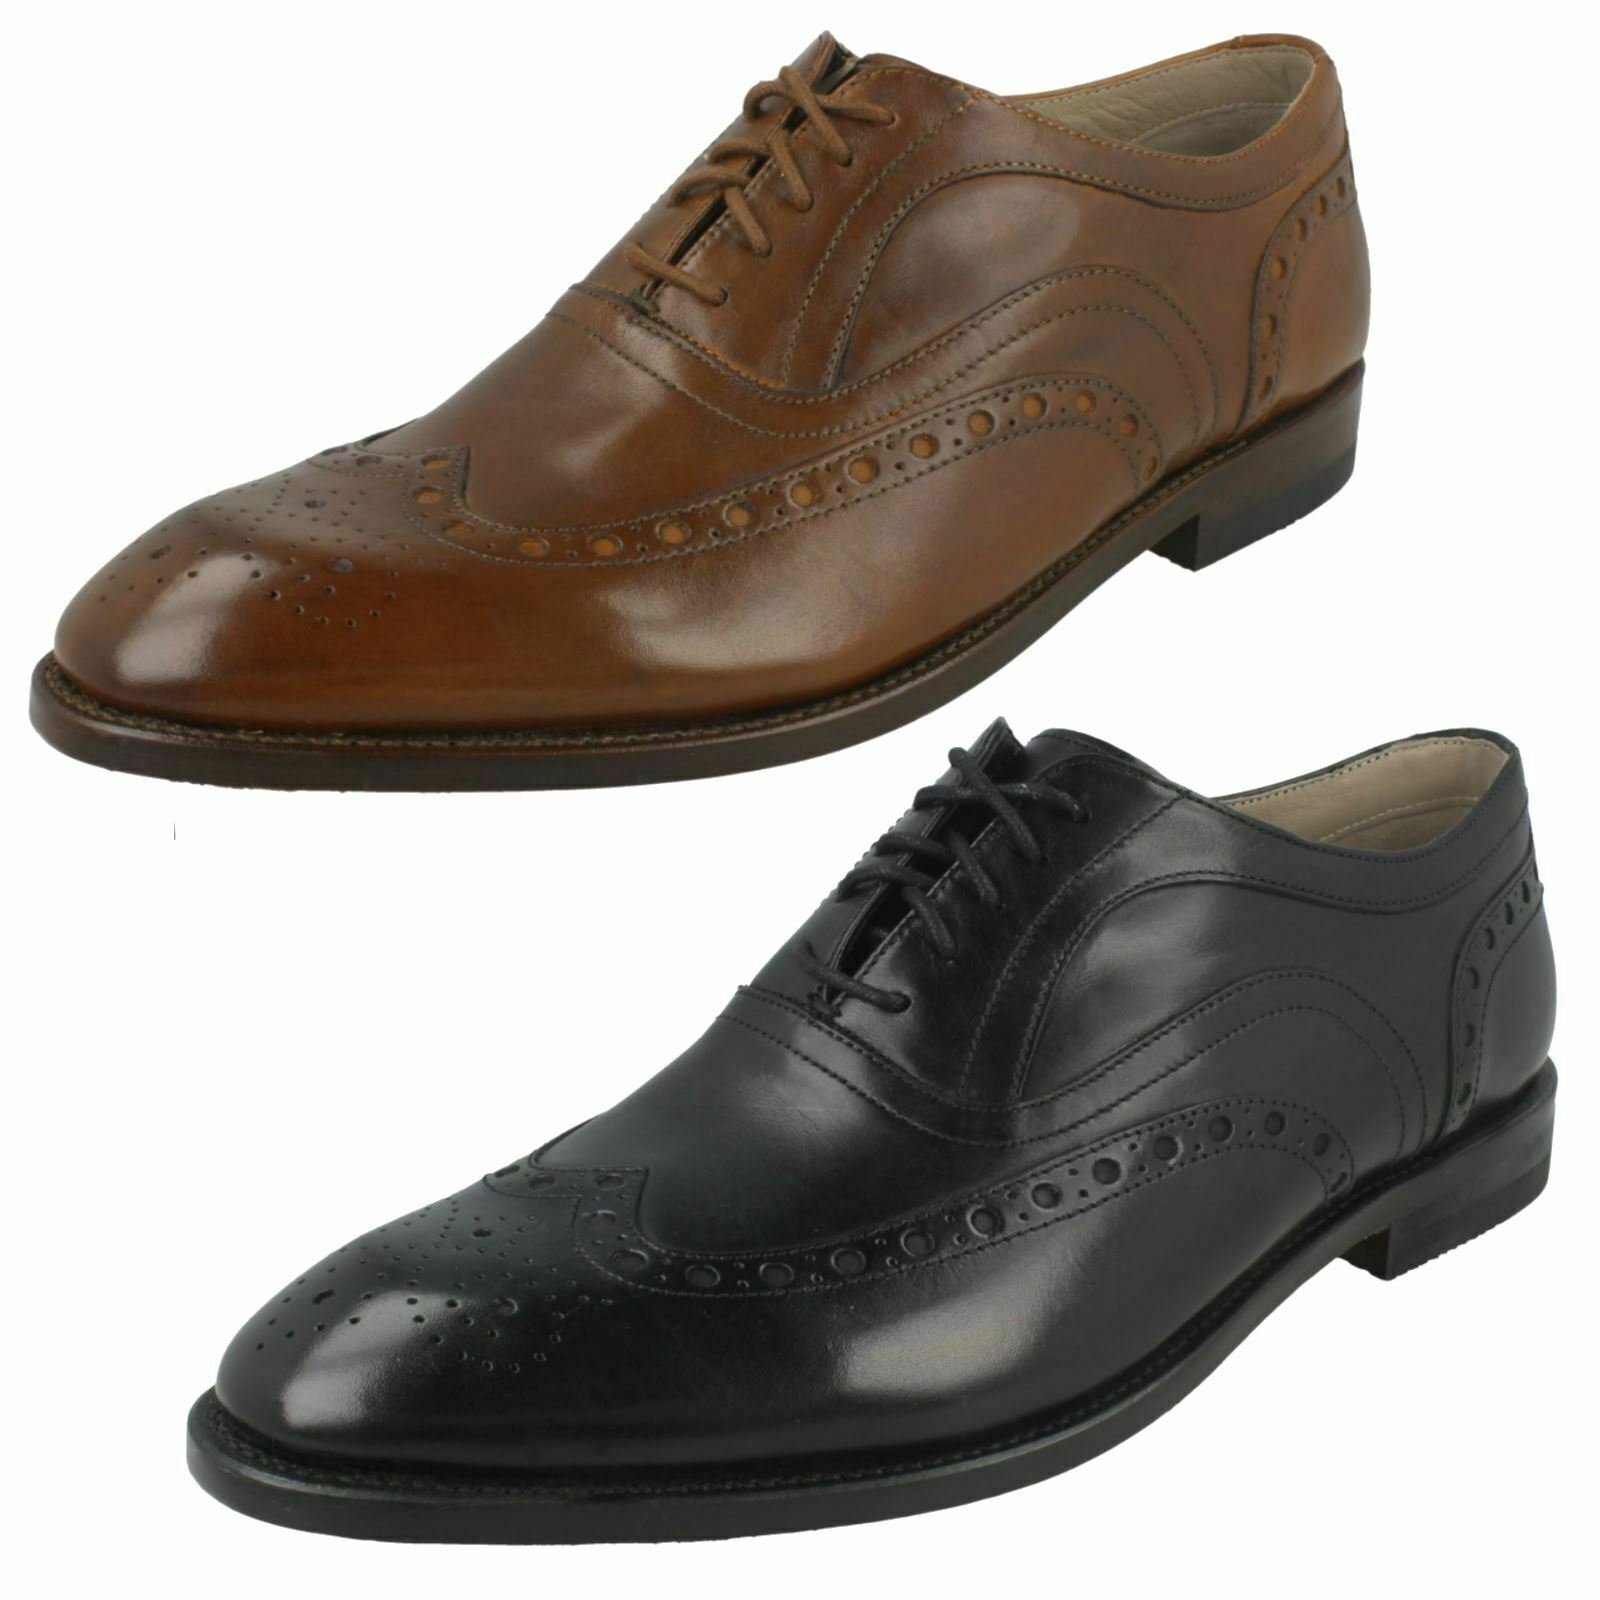 MENS CLARKS LEATHER DRESS SMART FORMAL BROGUES LACE UP SHOES SIZE TWINLEY LIMIT